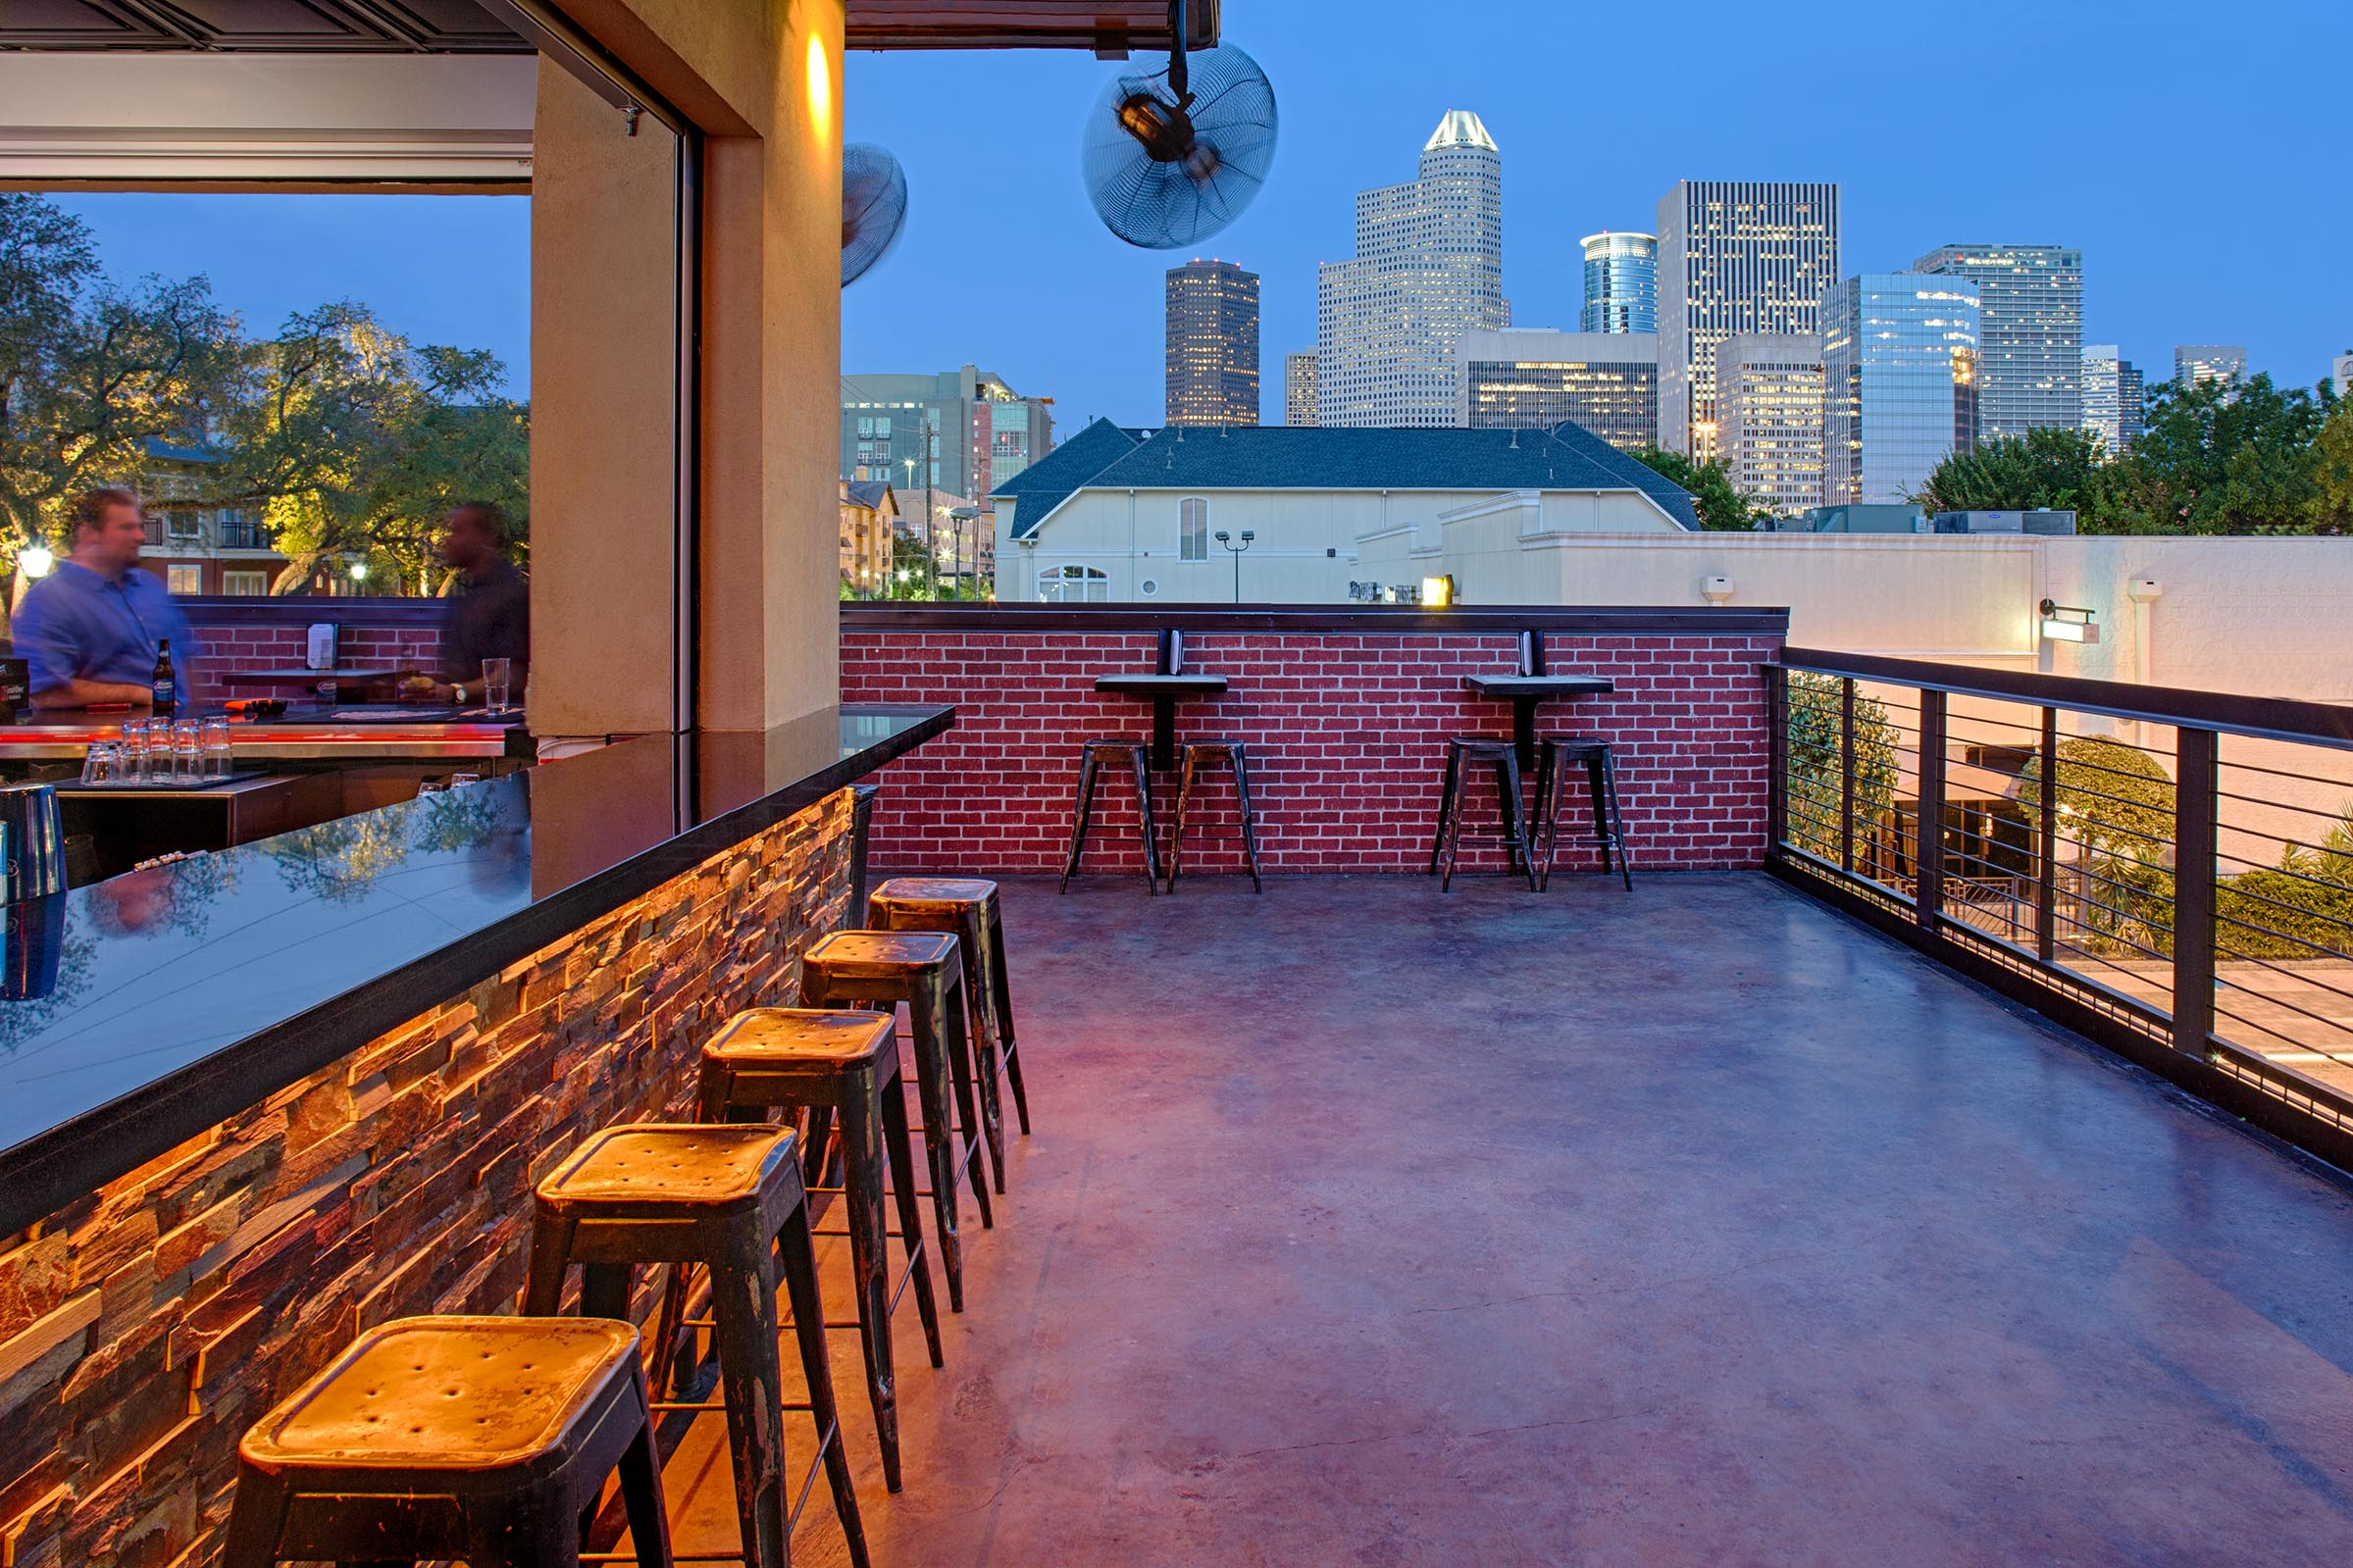 Quite often our barand restaurant designsfeature roof decks to get away from the heat and capture a view. (The Dogwood, Houston, TX)